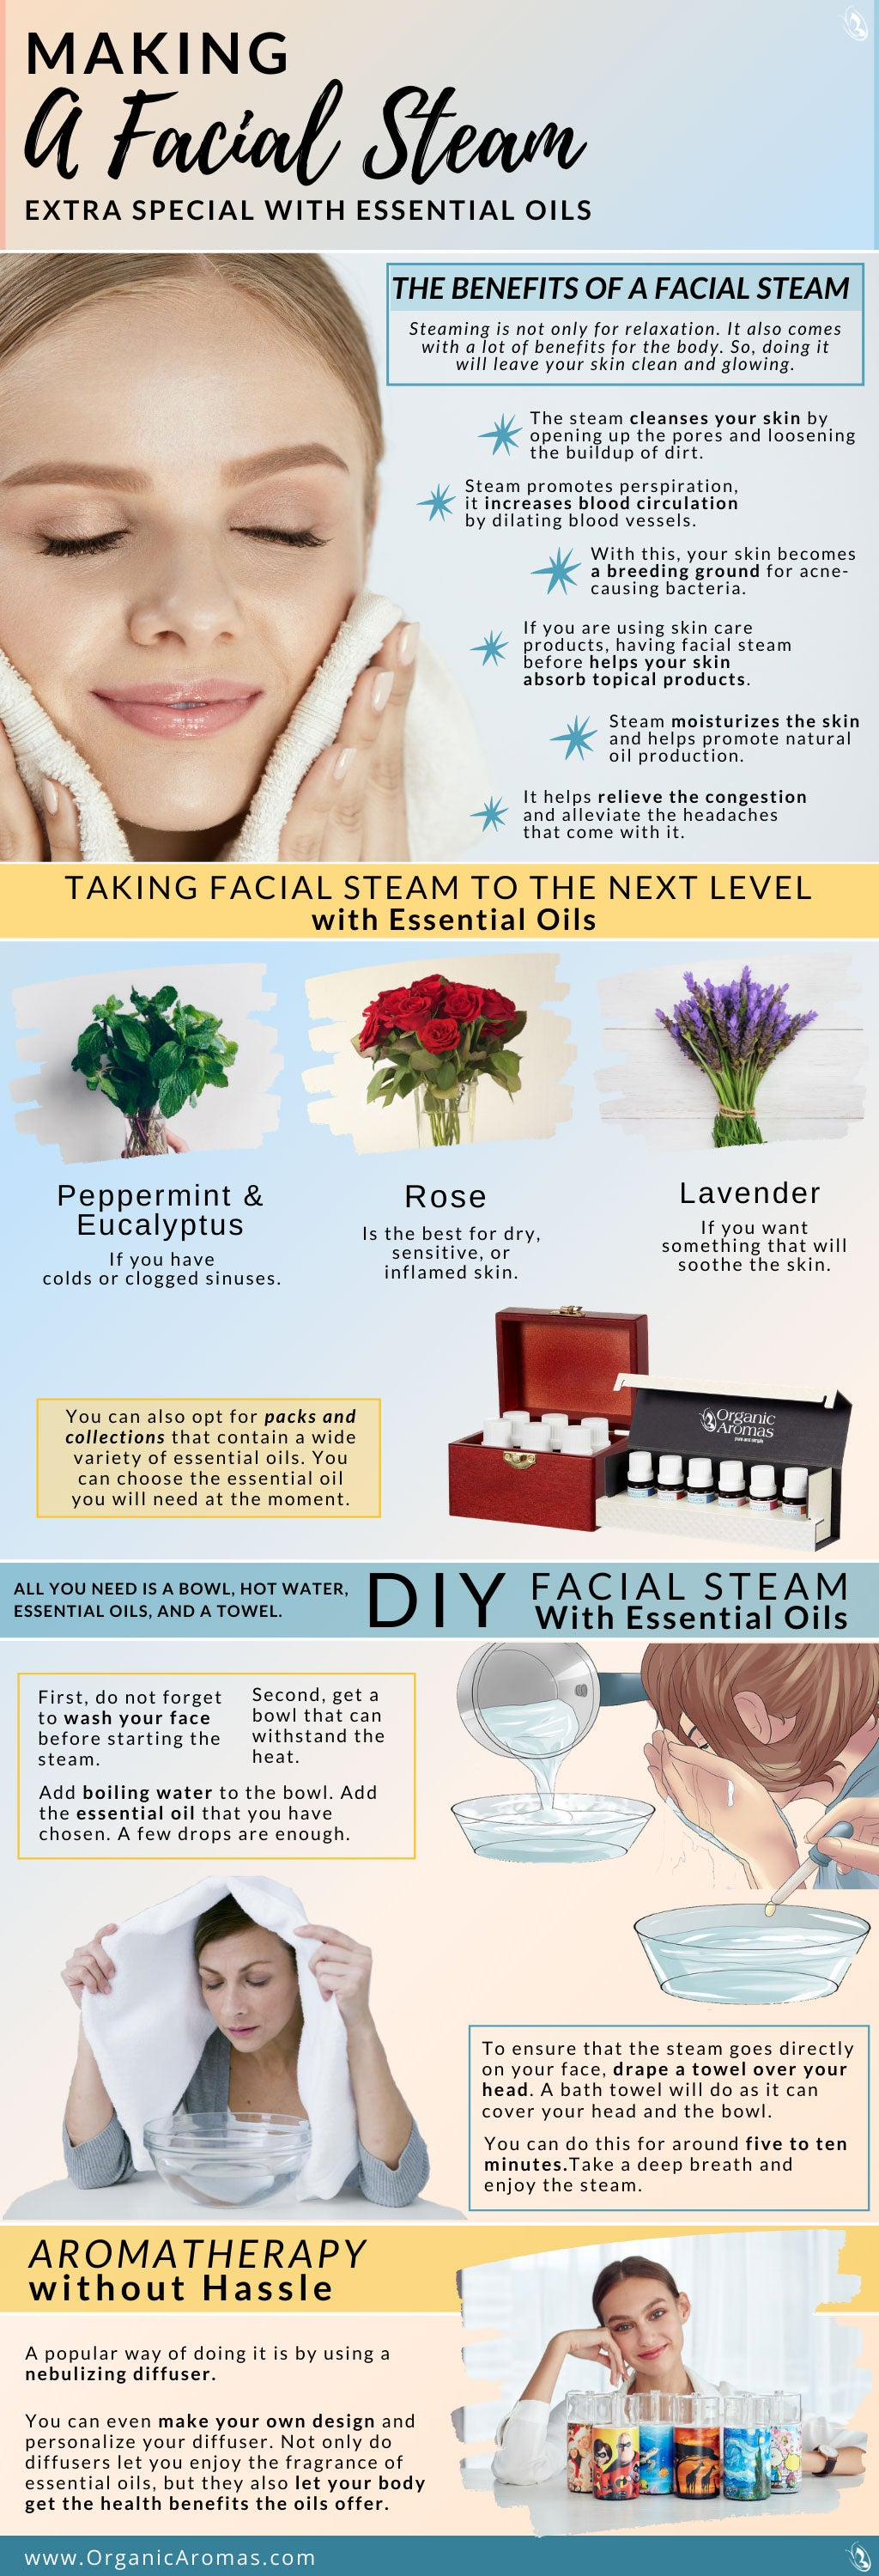 Making A Facial Steam Extra Special with Essential Oils